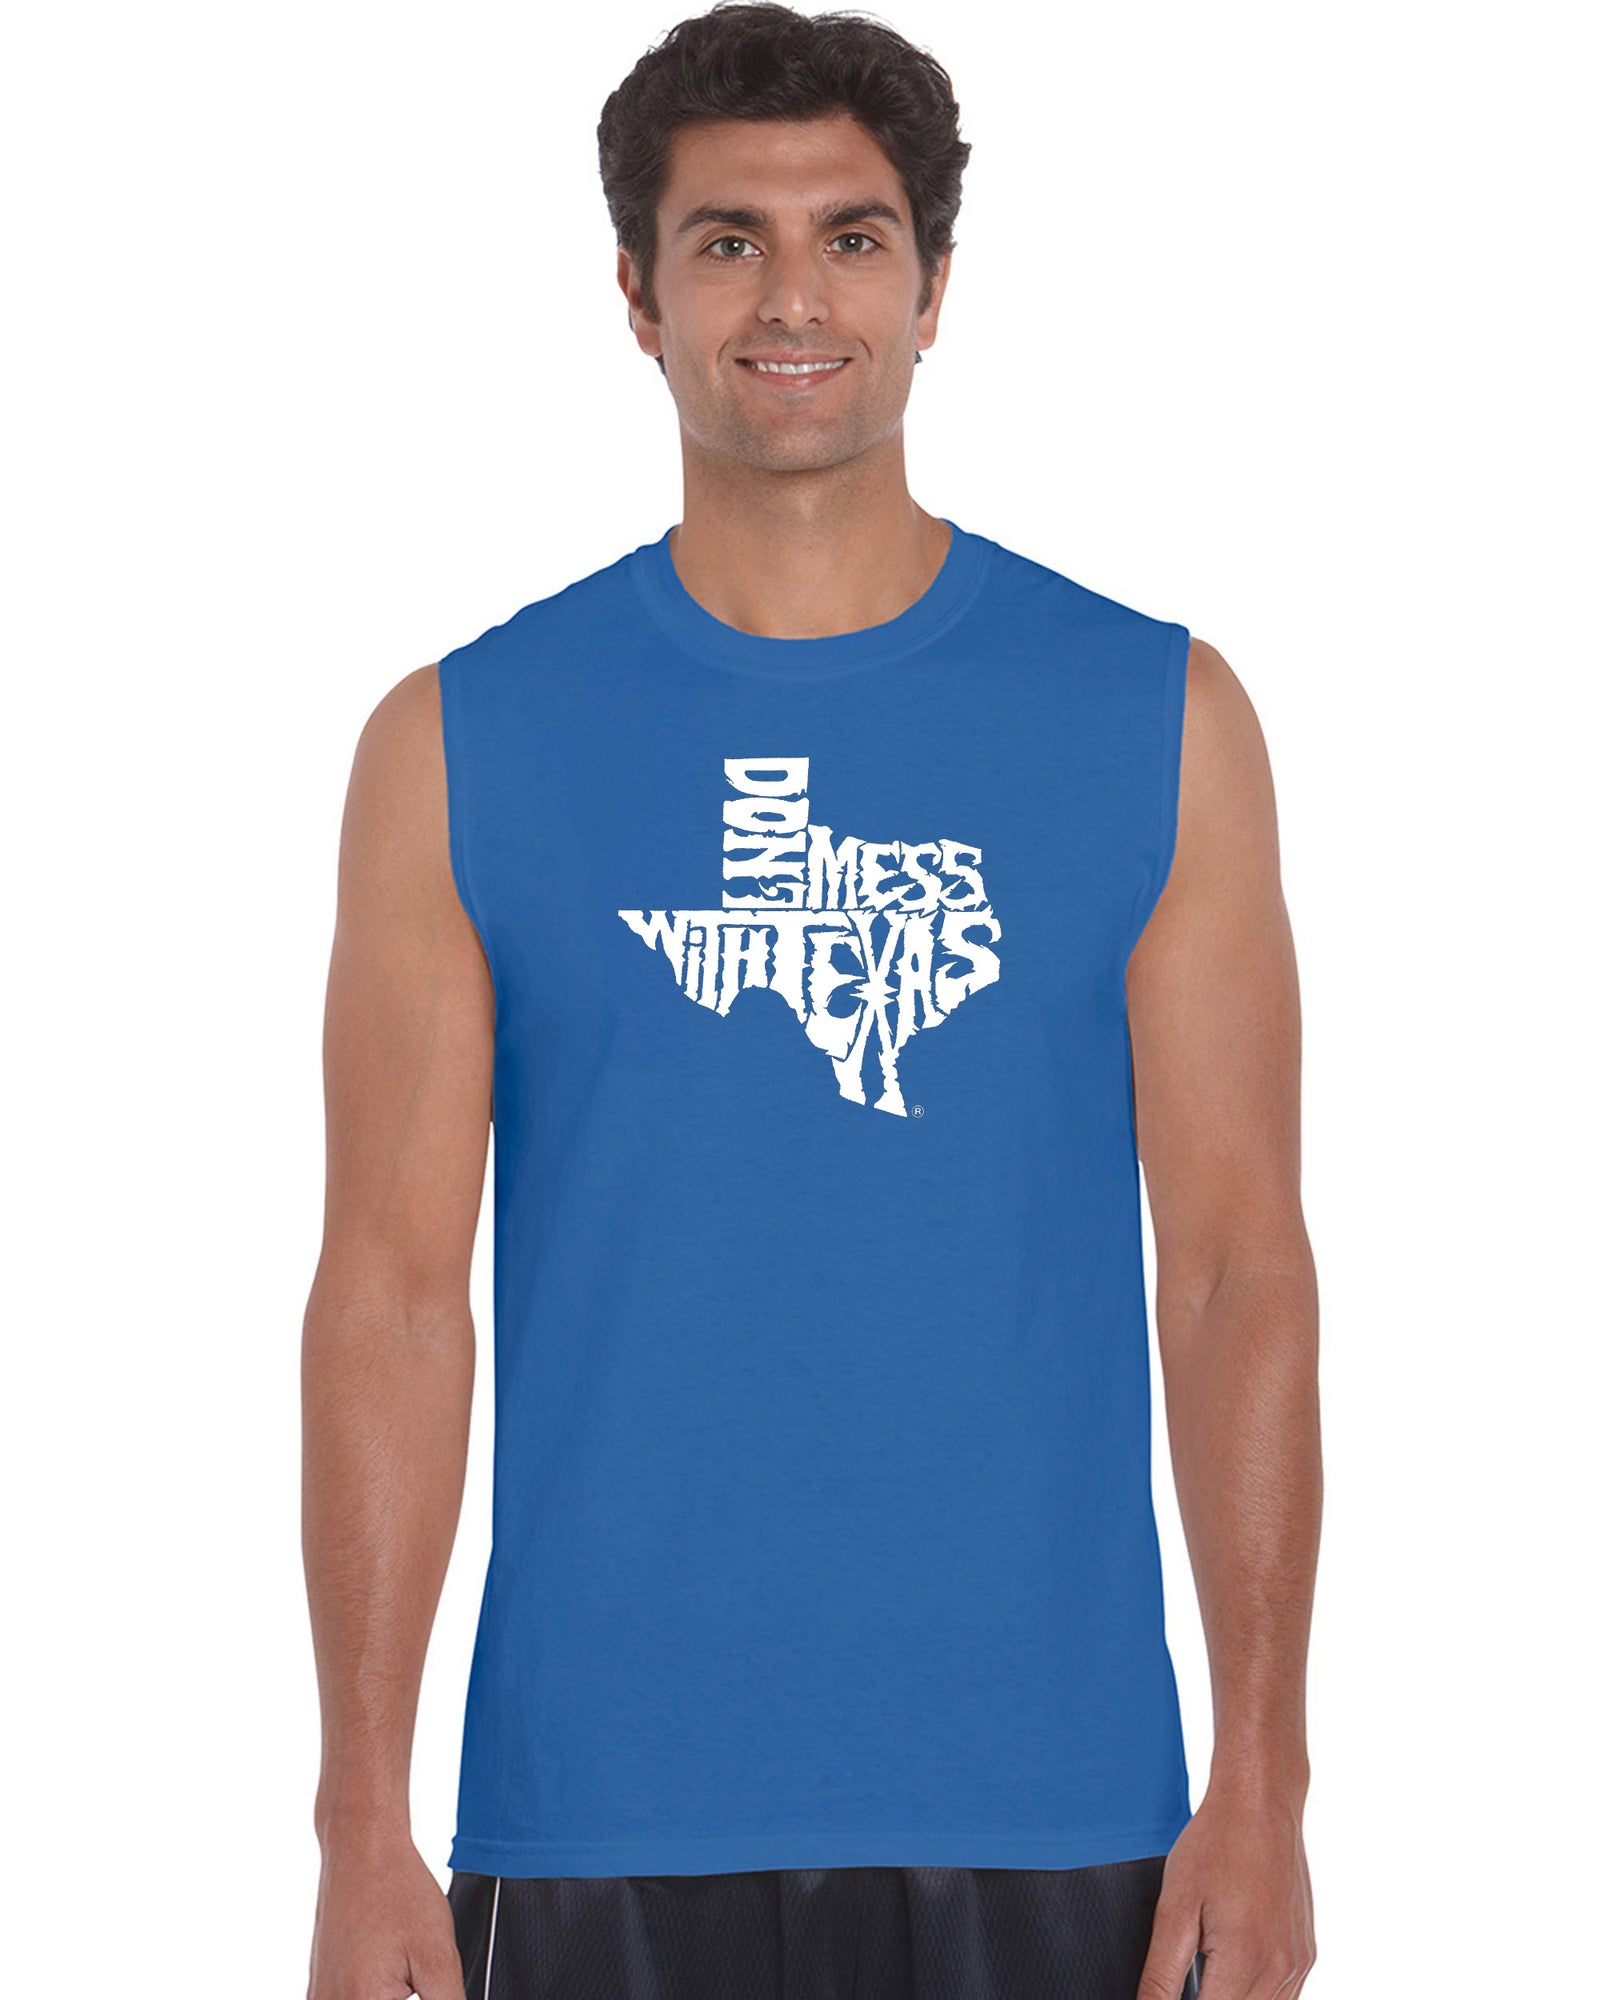 Men's Sleeveless T-shirt - DONT MESS WITH TEXAS